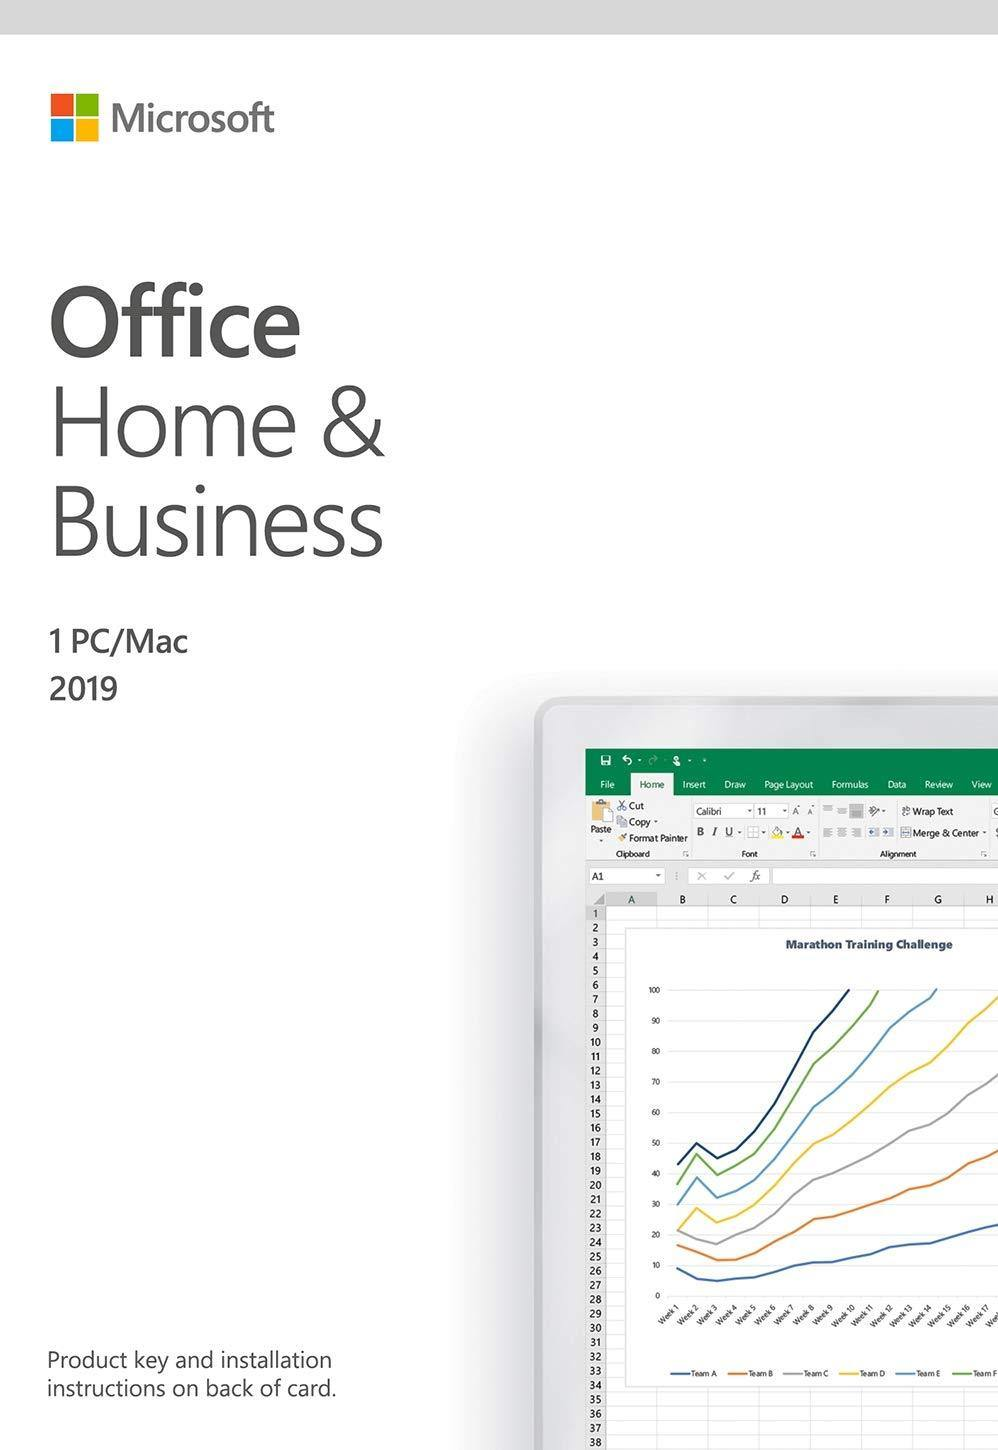 Microsoft Office Home and Business 2019 | 1 person, Windows 10 PC/Mac Key Card, English - Atlas Computers & Electronics